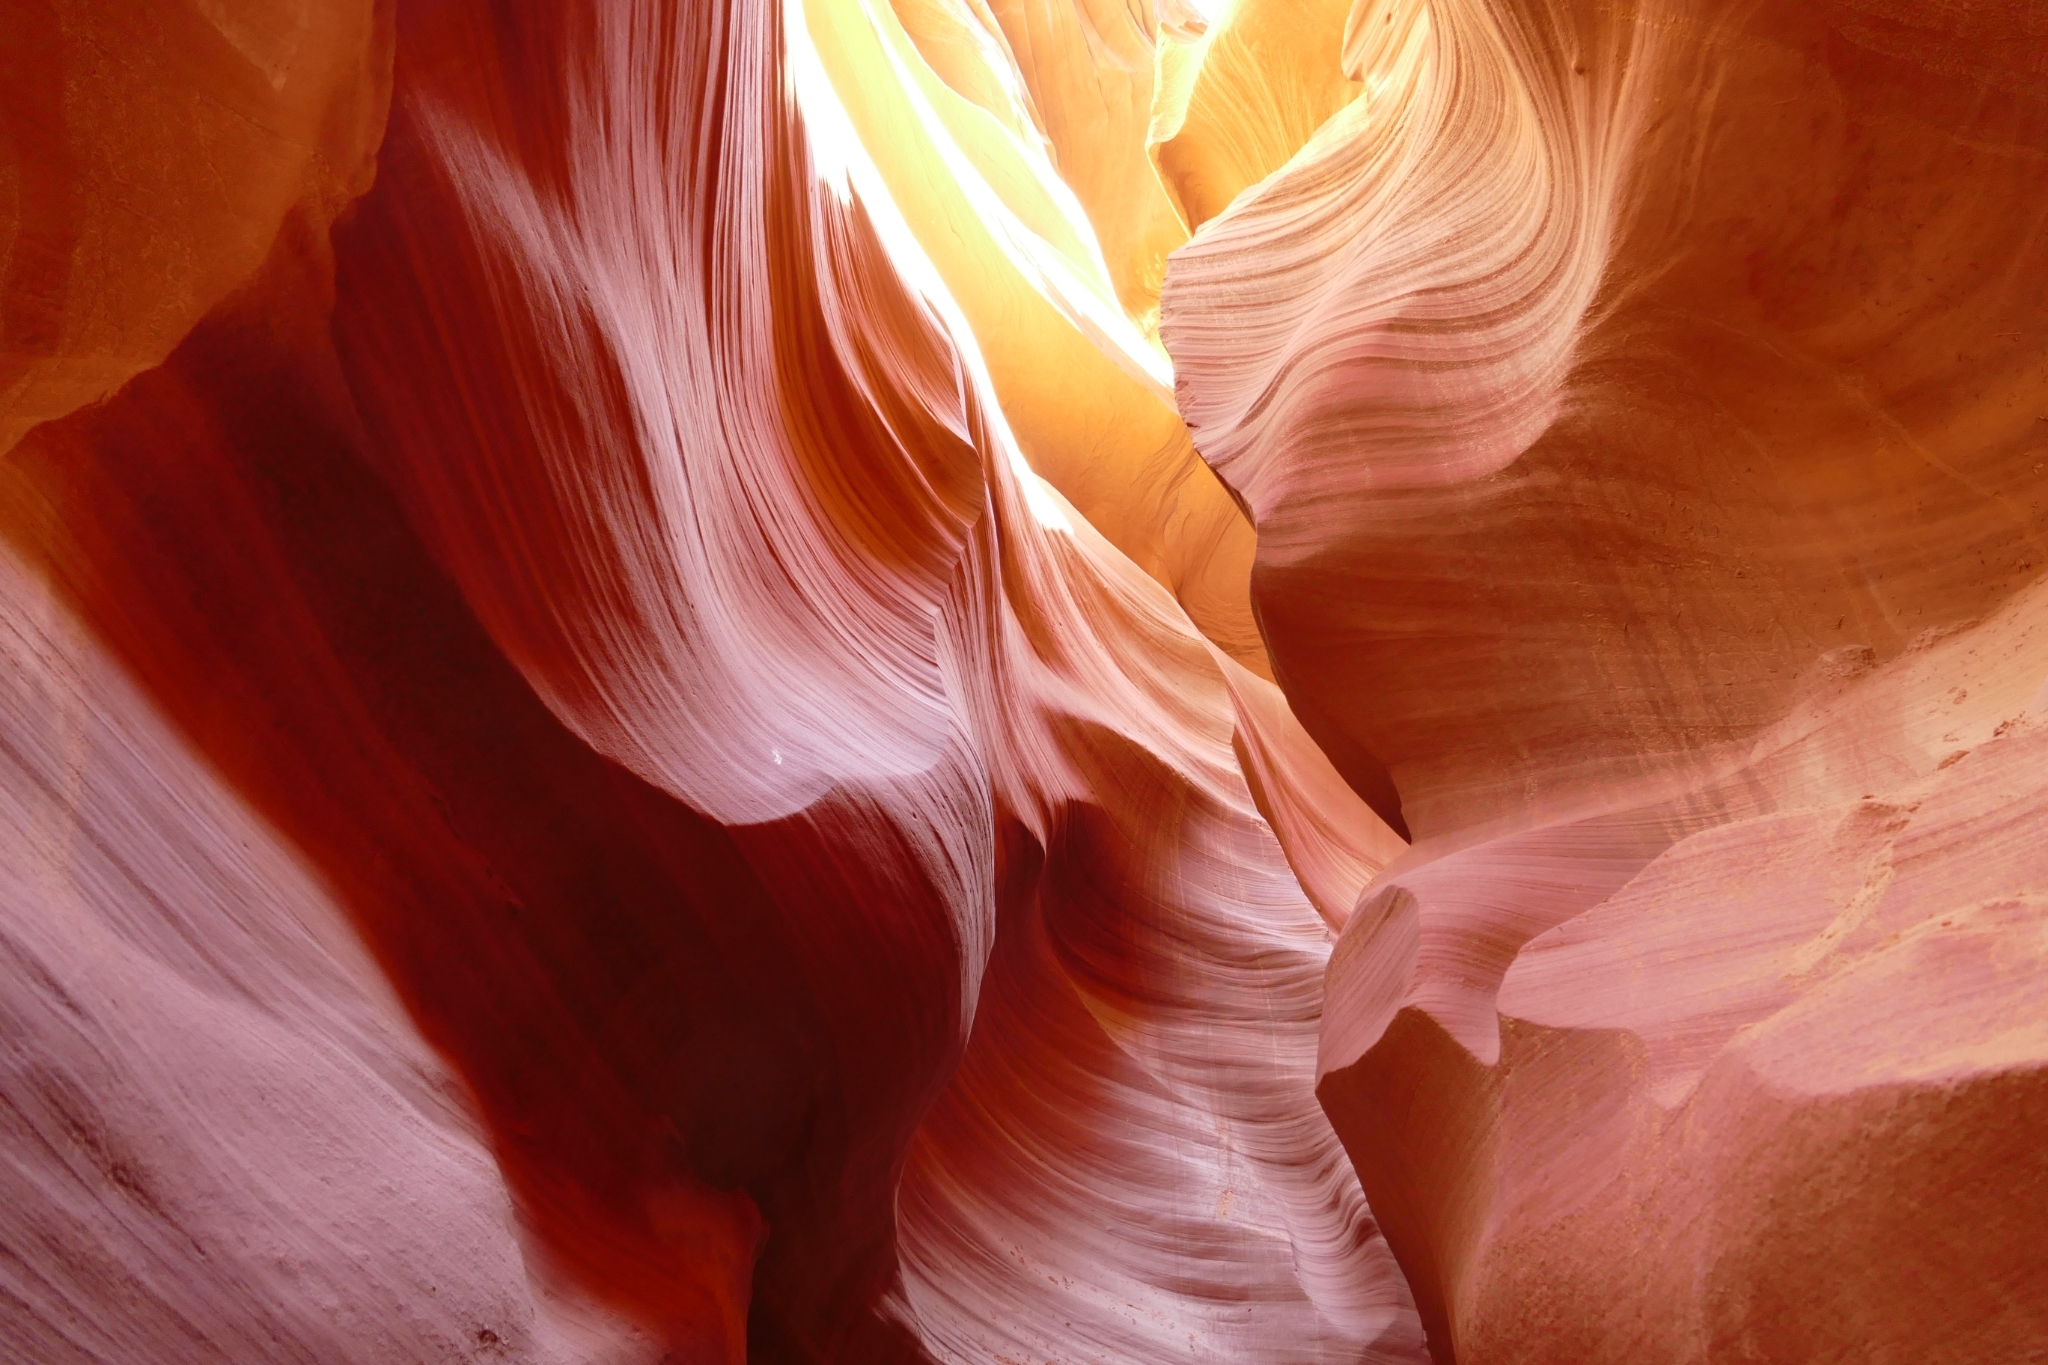 17 juillet 2018 - Antelope Lower Canyon